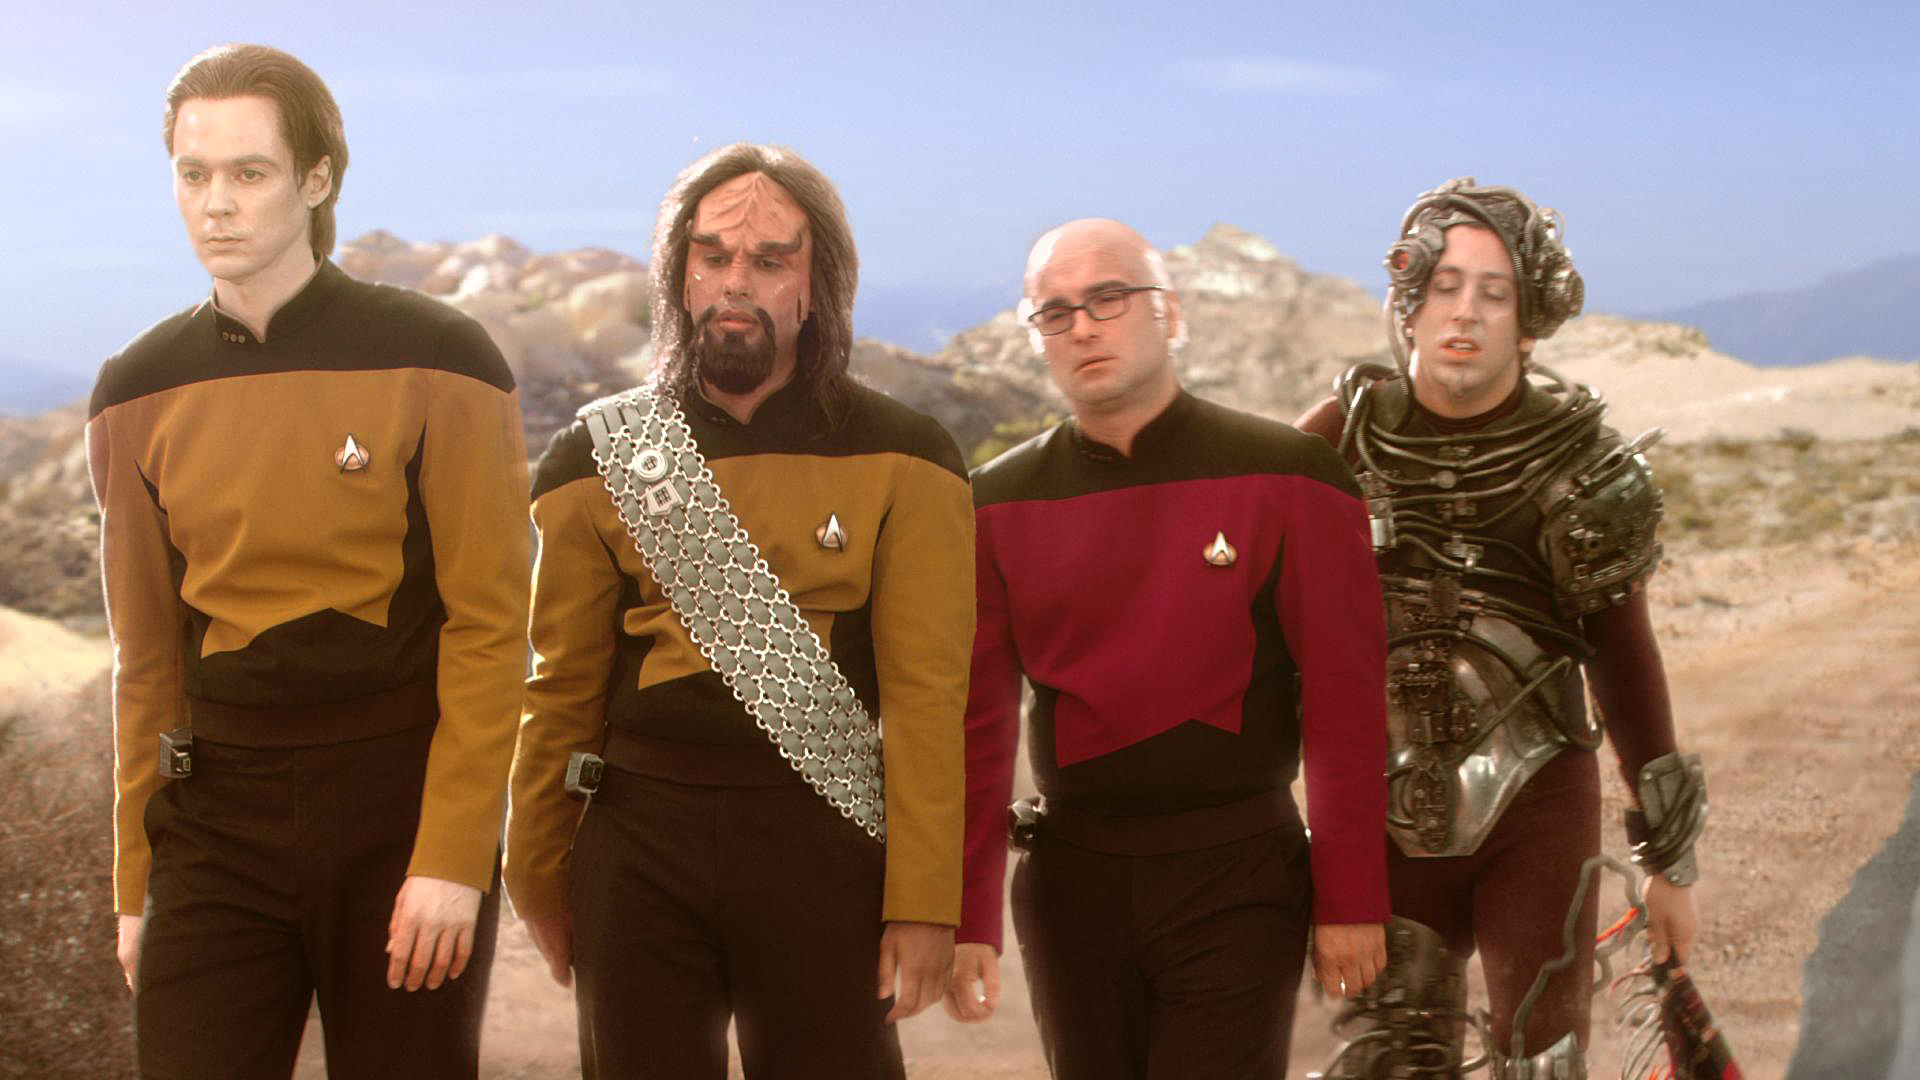 The Big Bang Theory Star Trek